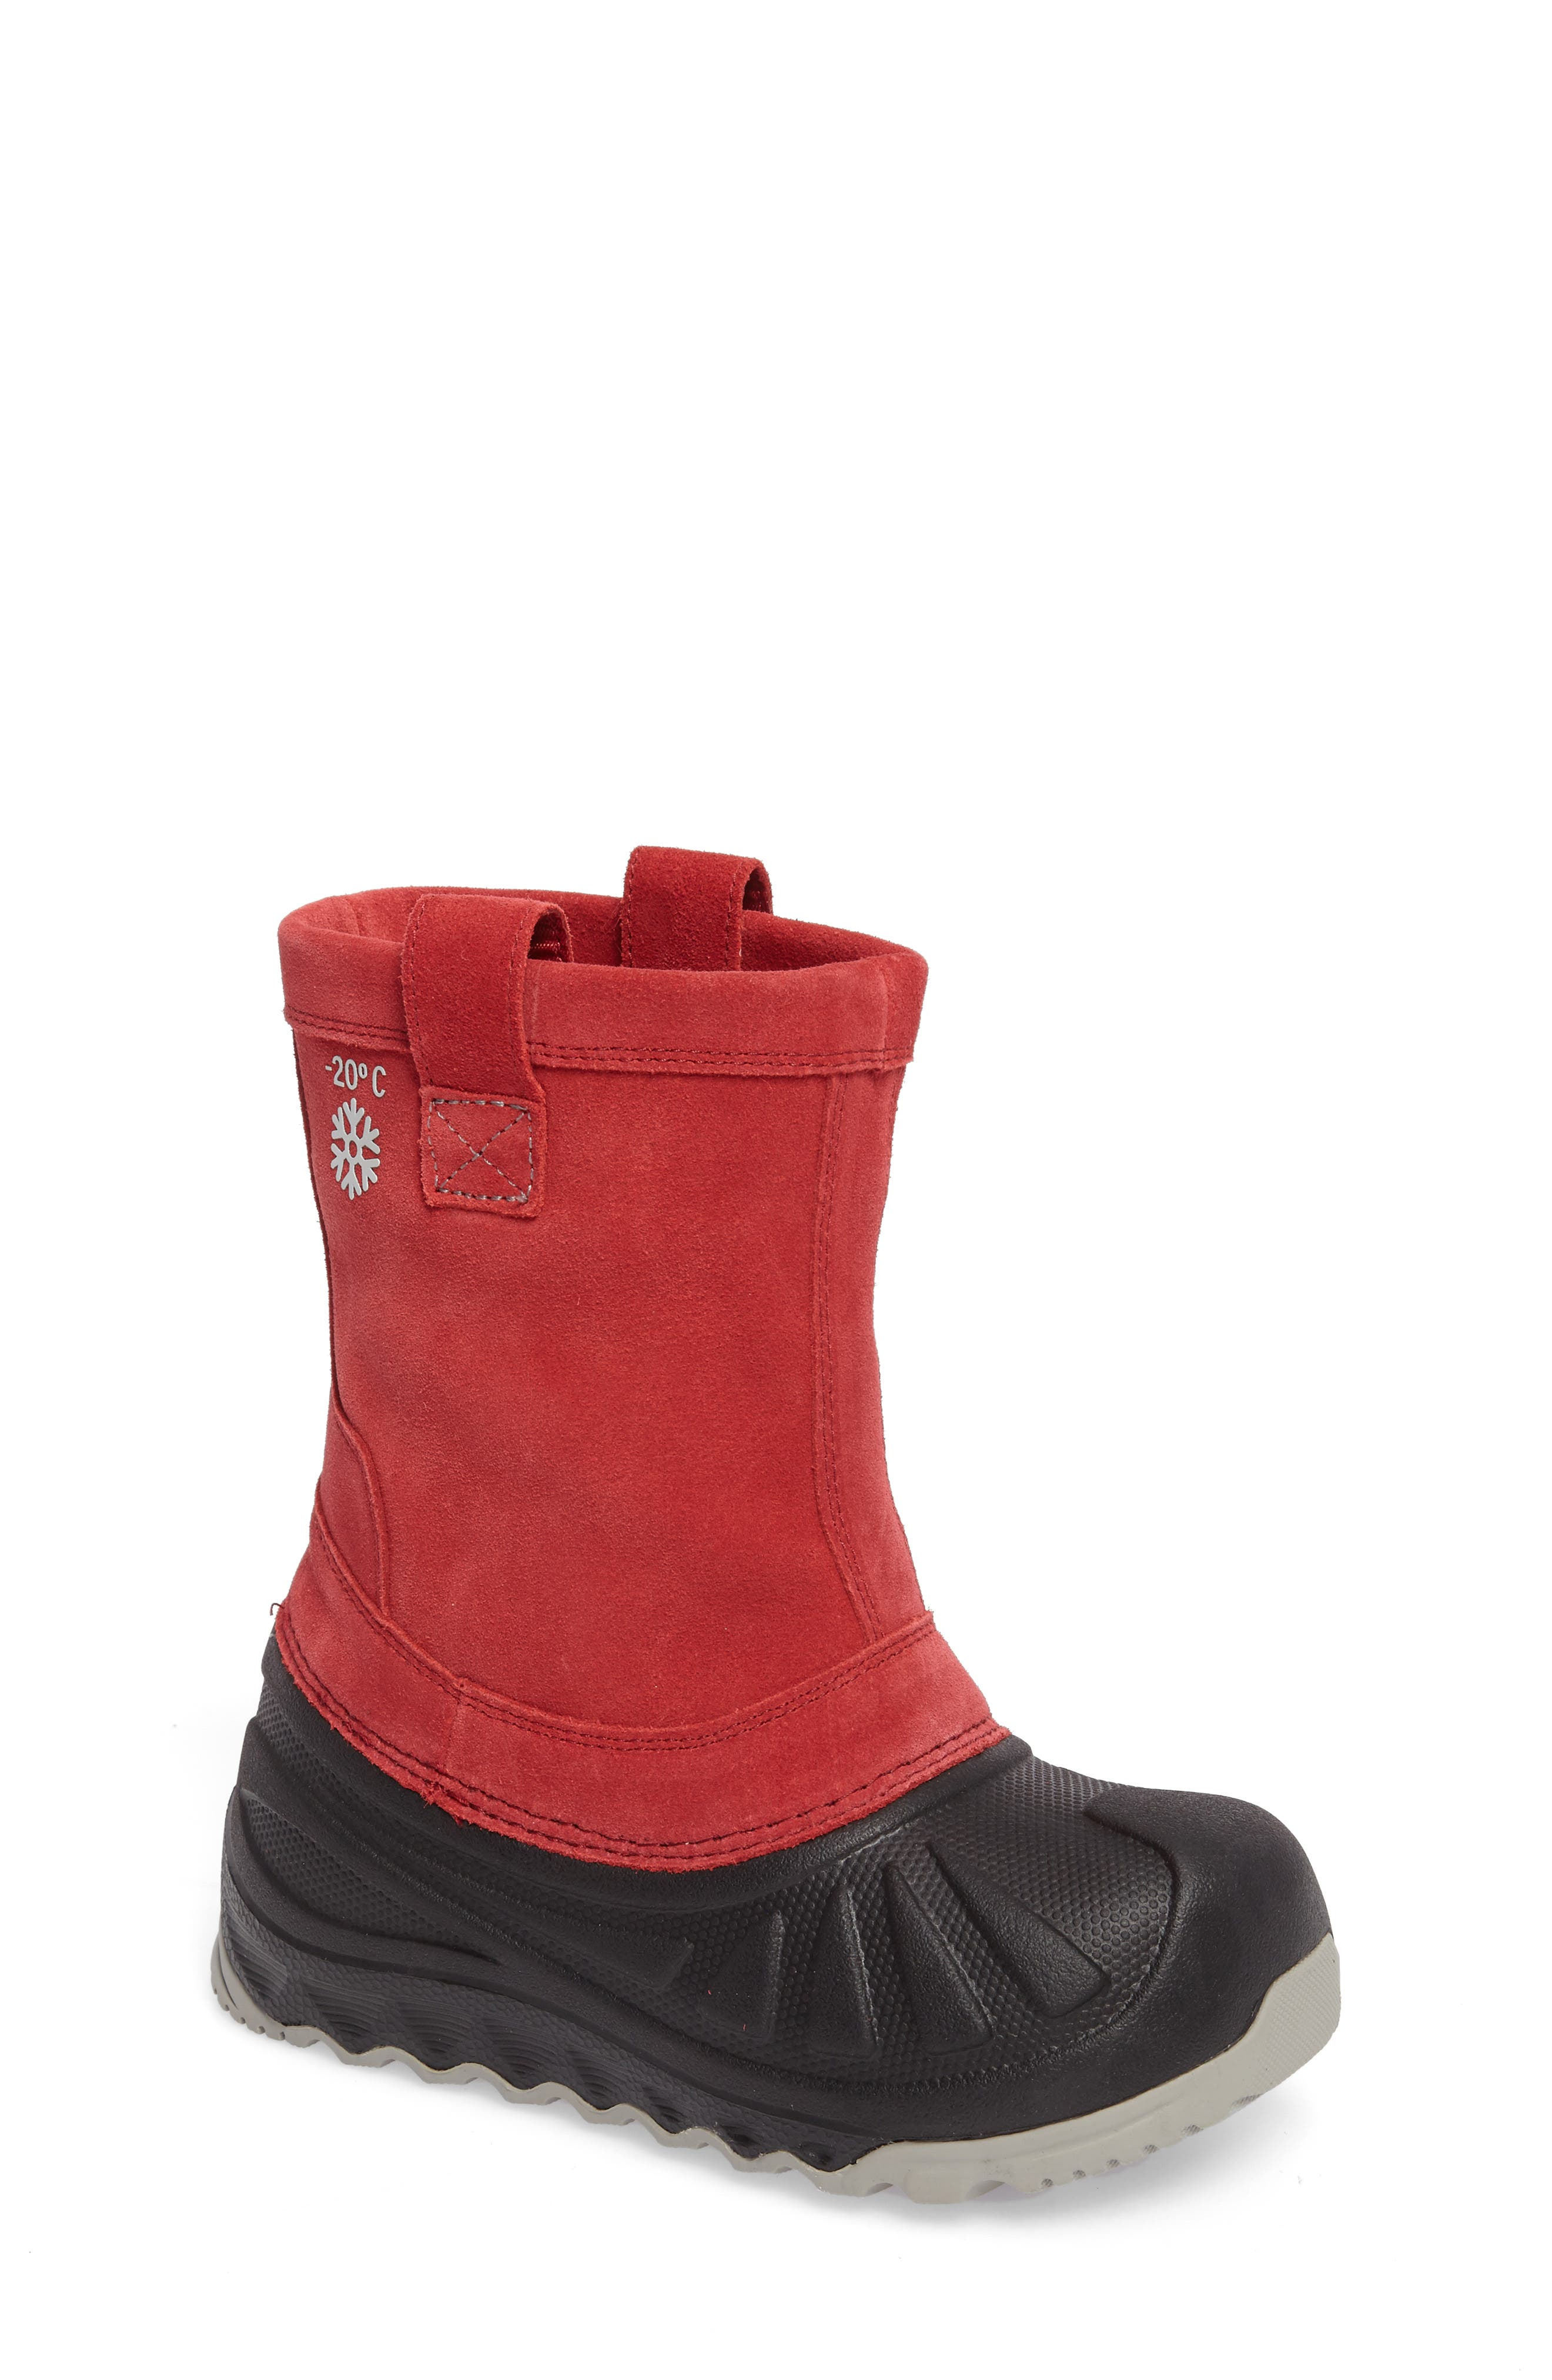 Evertt Waterproof Thinsulate<sup>™</sup> Insulated Snow Boot,                             Main thumbnail 2, color,